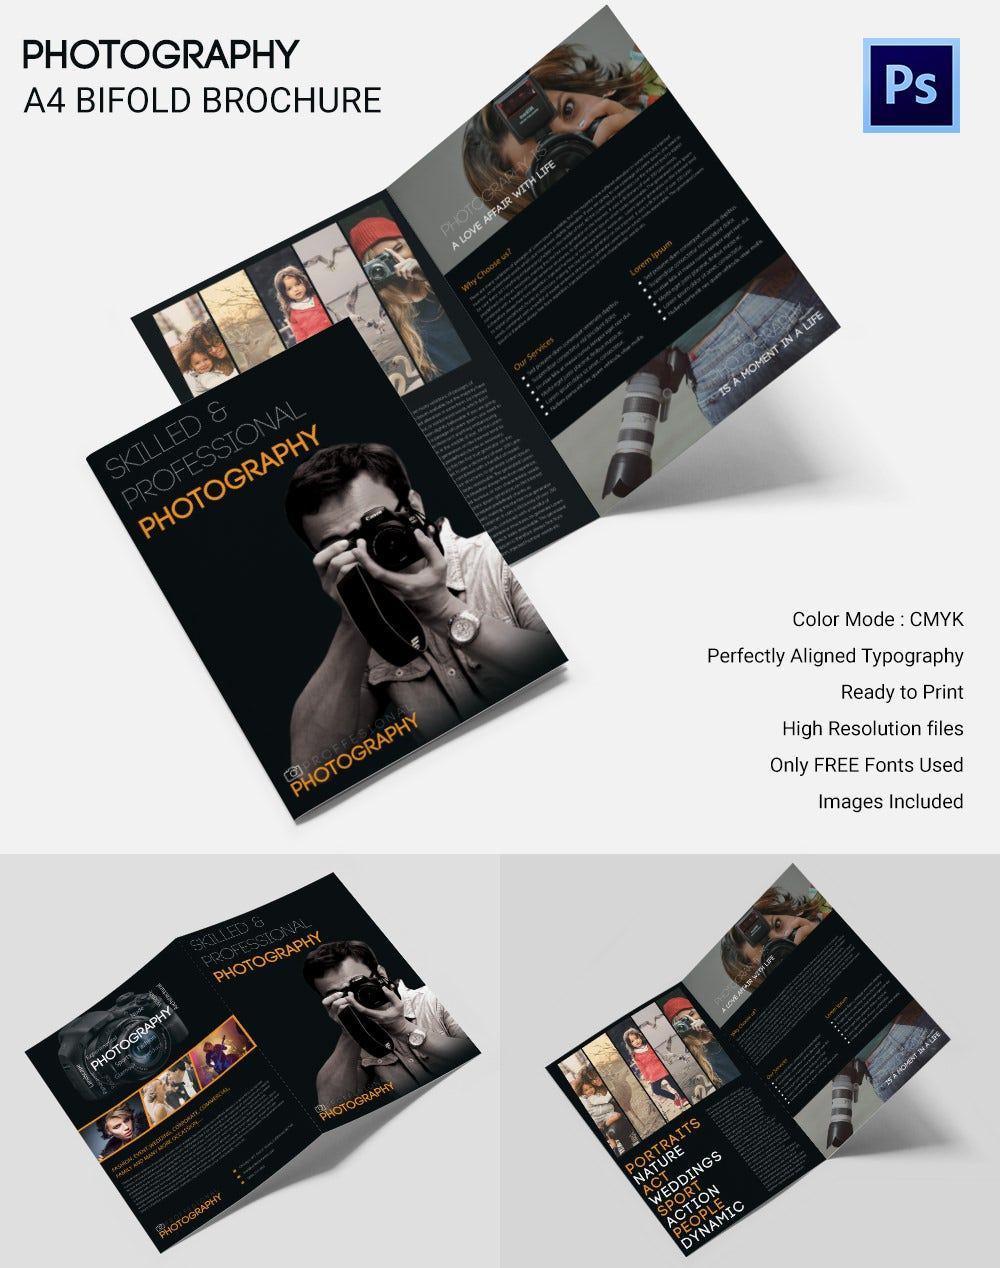 Photography A4 Bifold Brochure Template